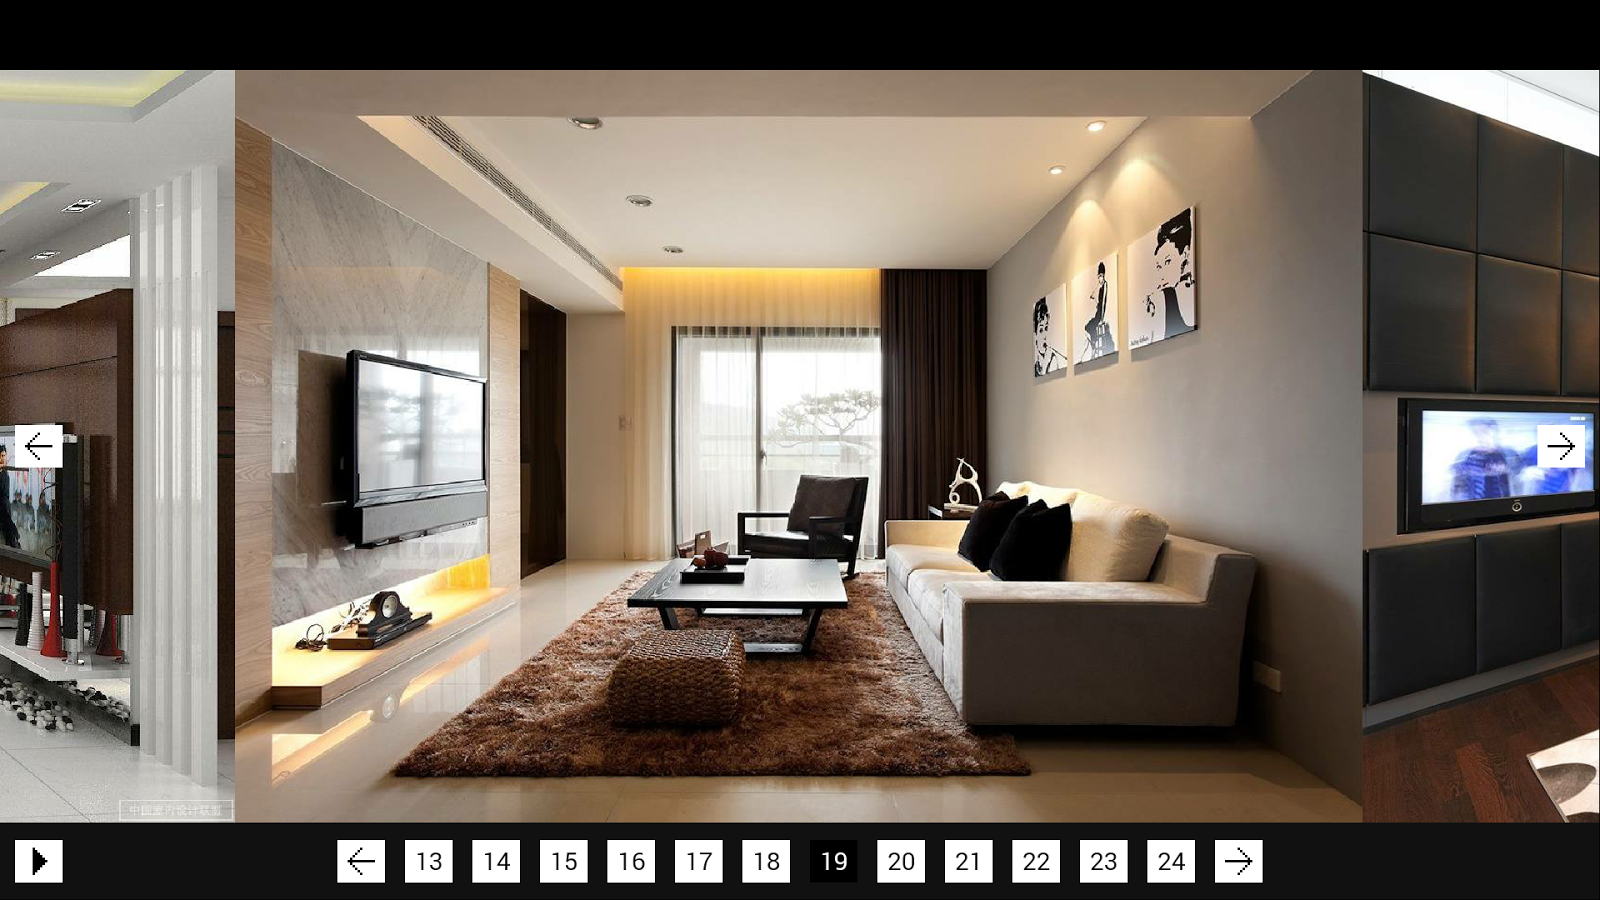 Home Interior Design Android Apps On Google Play - Interior house designs